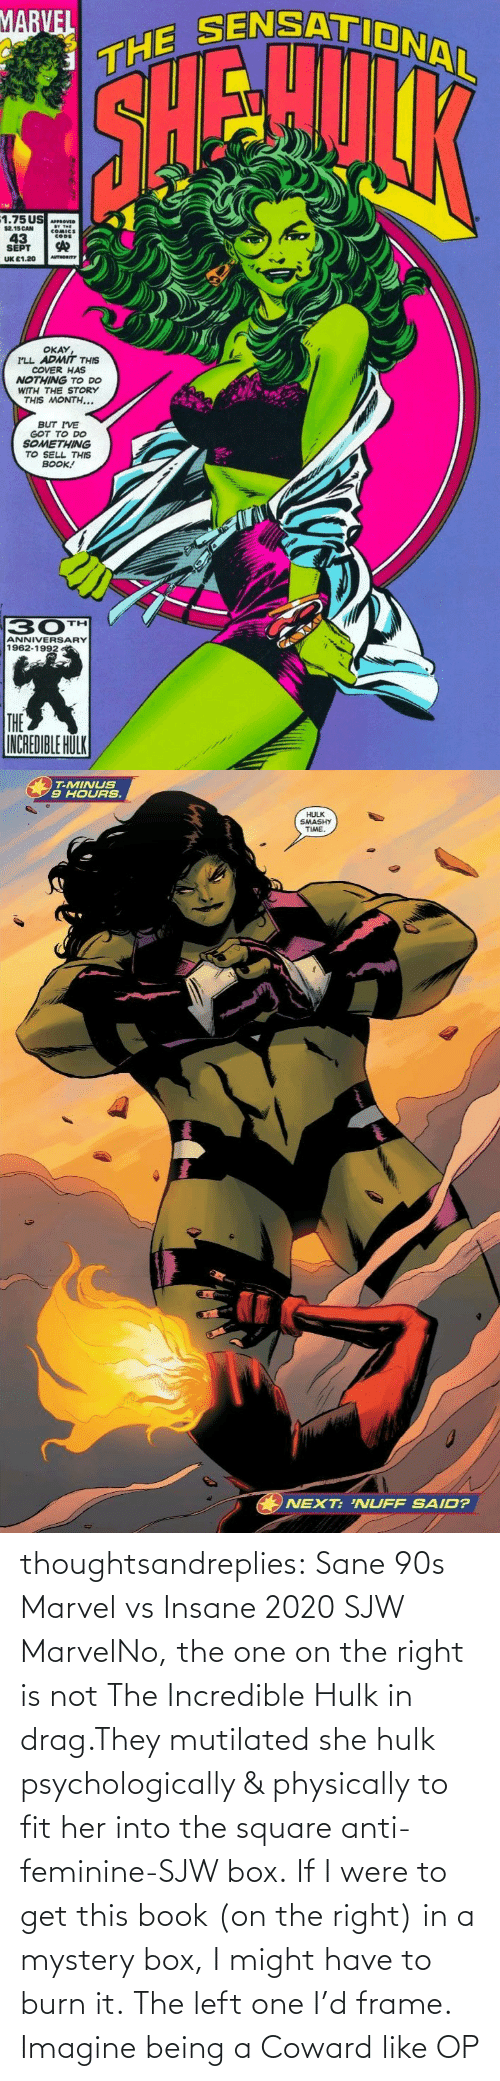 Being: thoughtsandreplies:  Sane 90s Marvel vs Insane 2020 SJW MarvelNo, the one on the right is not The Incredible Hulk in drag.They mutilated she hulk psychologically & physically to fit her into the square anti-feminine-SJW box. If I were to get this book (on the right) in a mystery box, I might have to burn it. The left one I'd frame.    Imagine being a Coward like OP